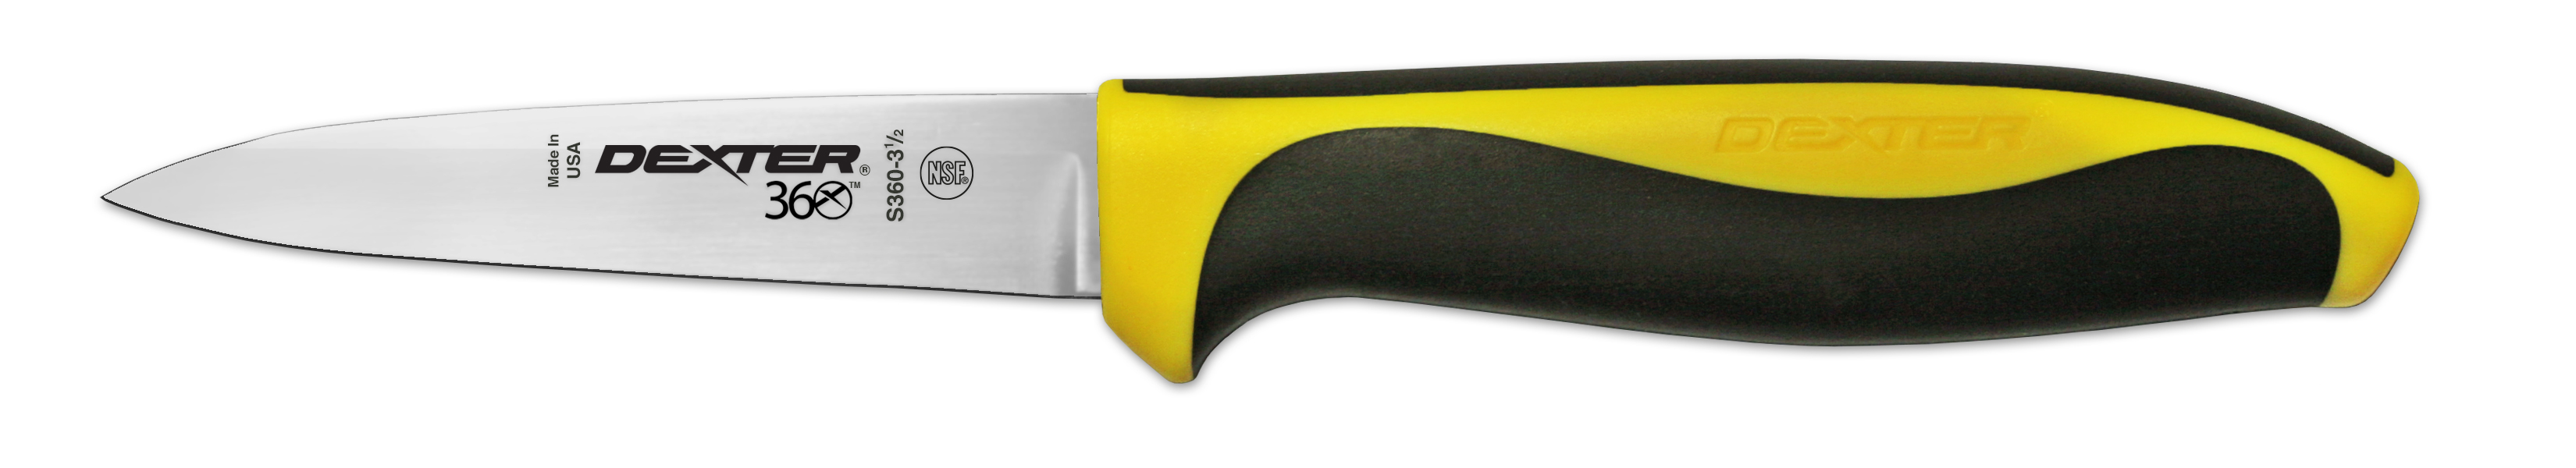 Dexter Russell 36000Y paring knife